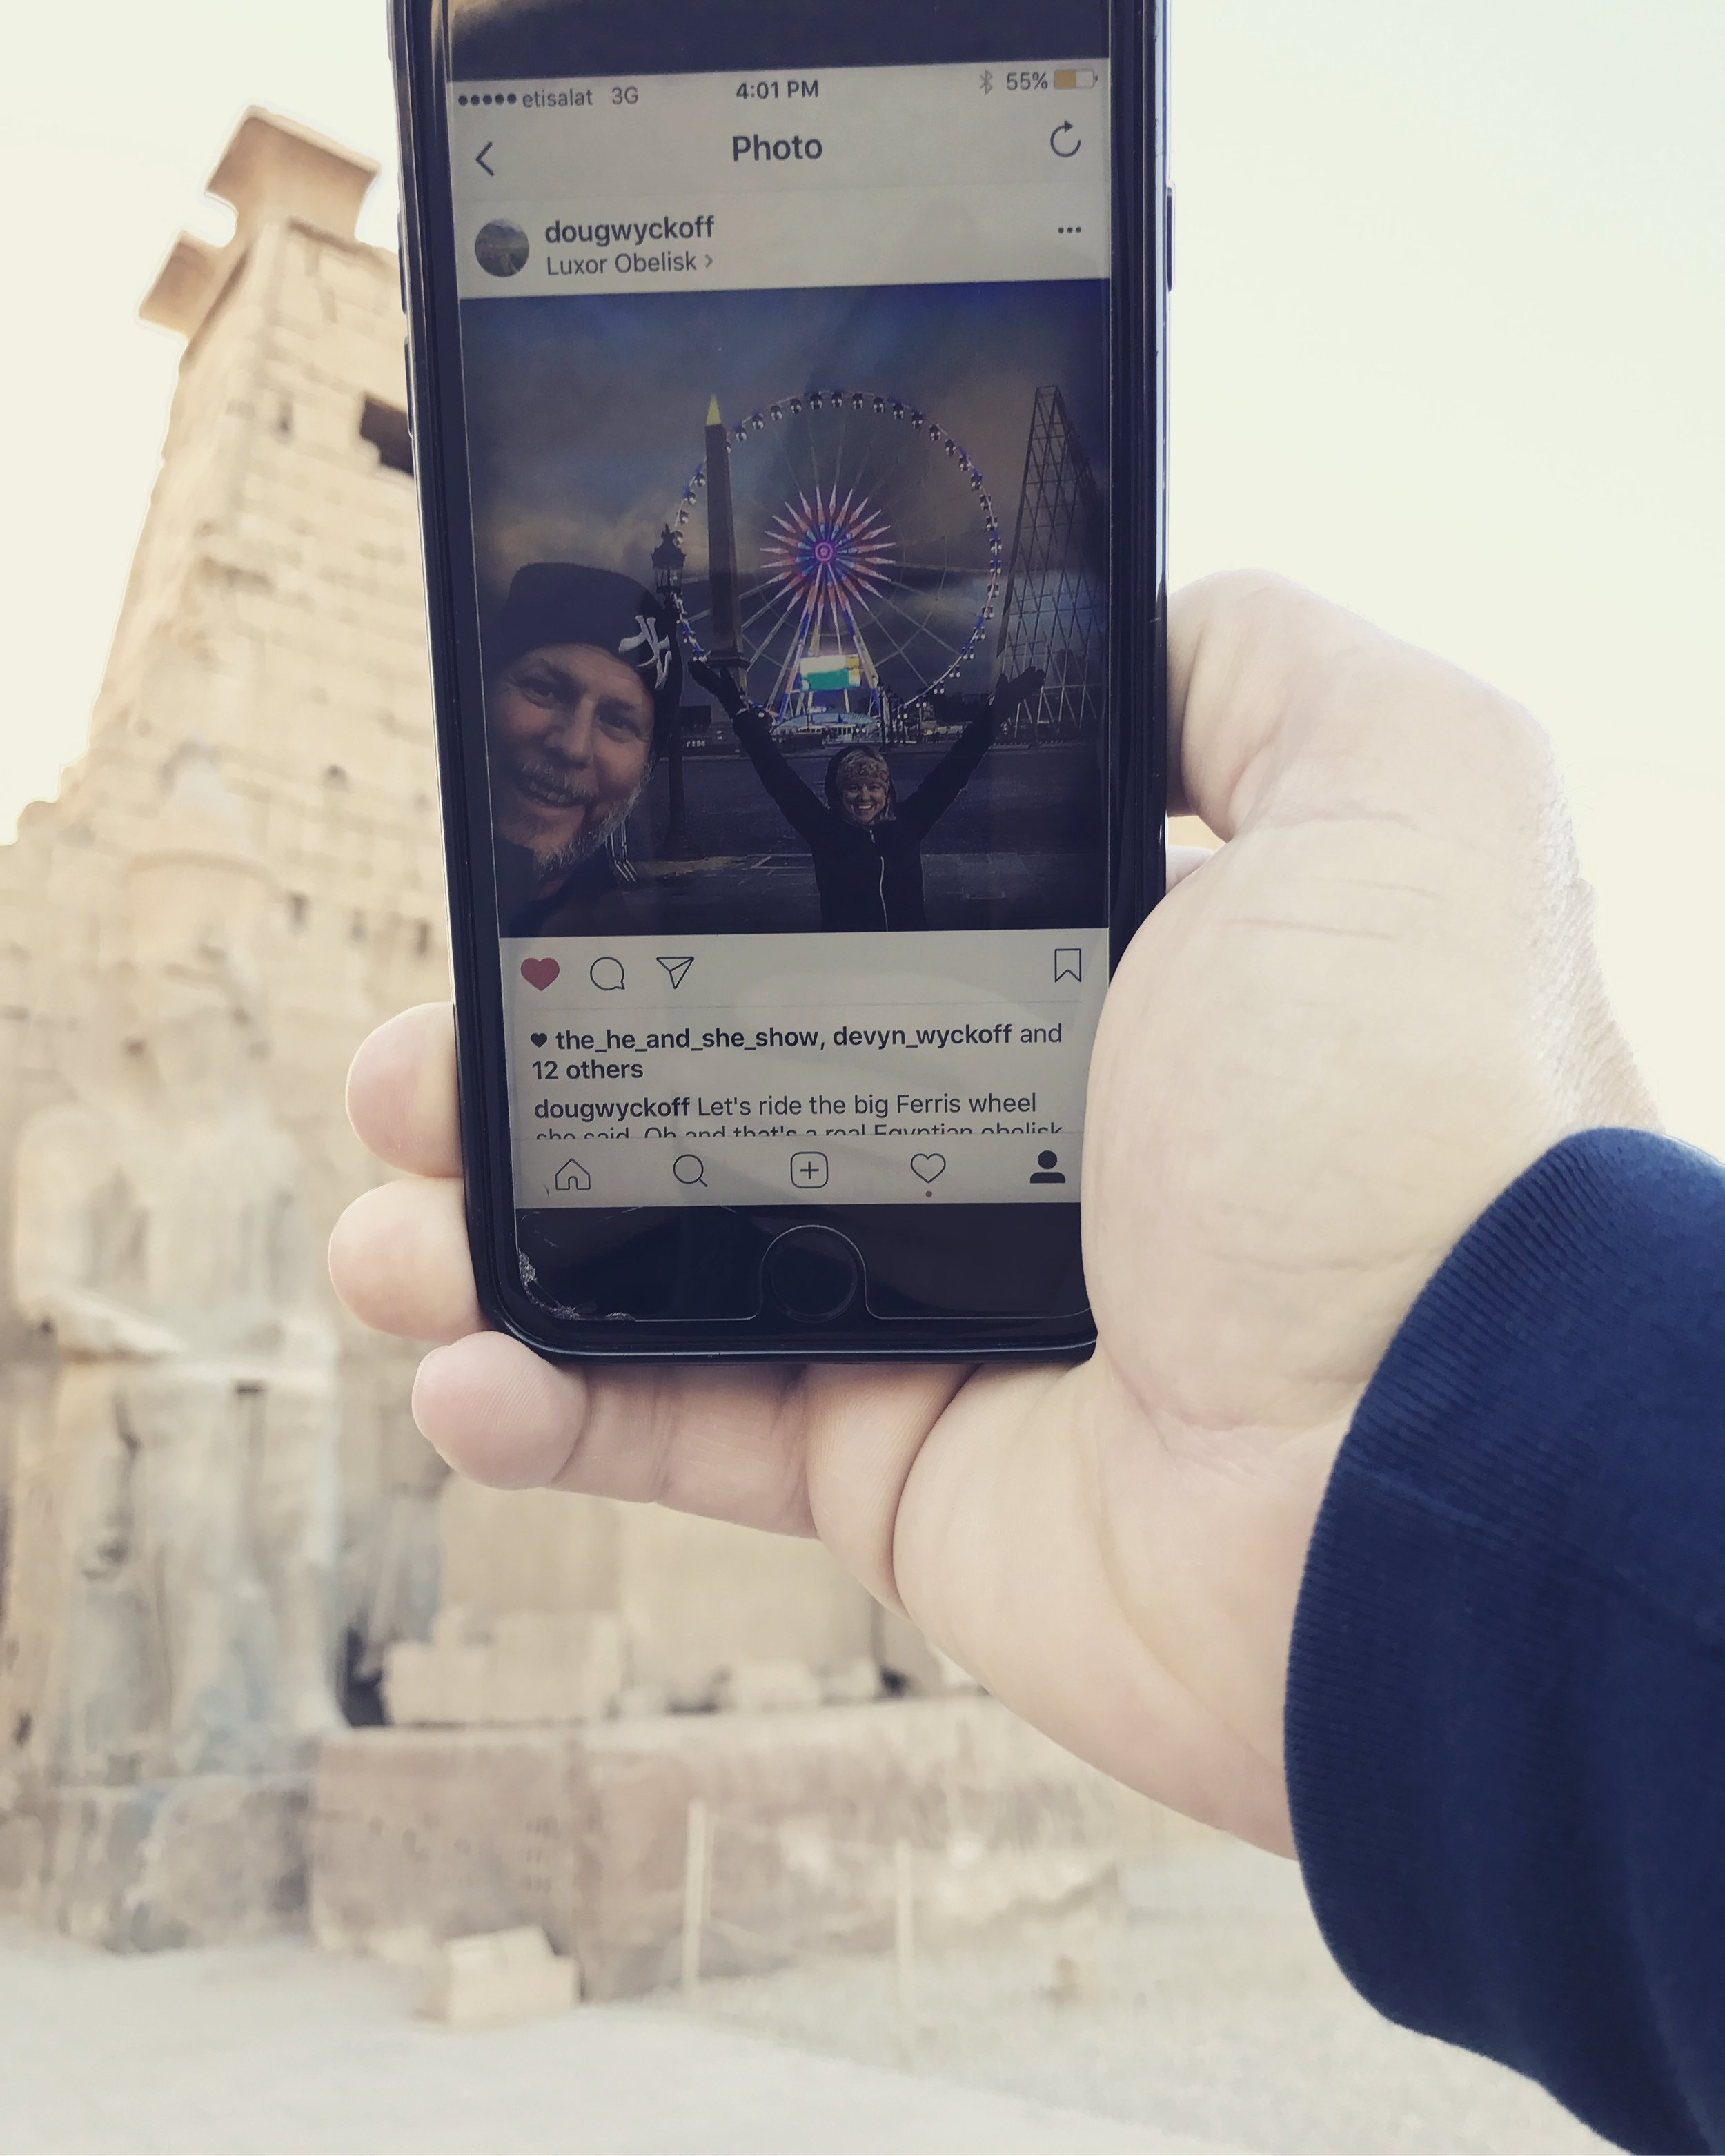 An instagram photo of us with an oblesik in France (which was originally taken from Egypt), posing from the spot in Egypt where they took it from.